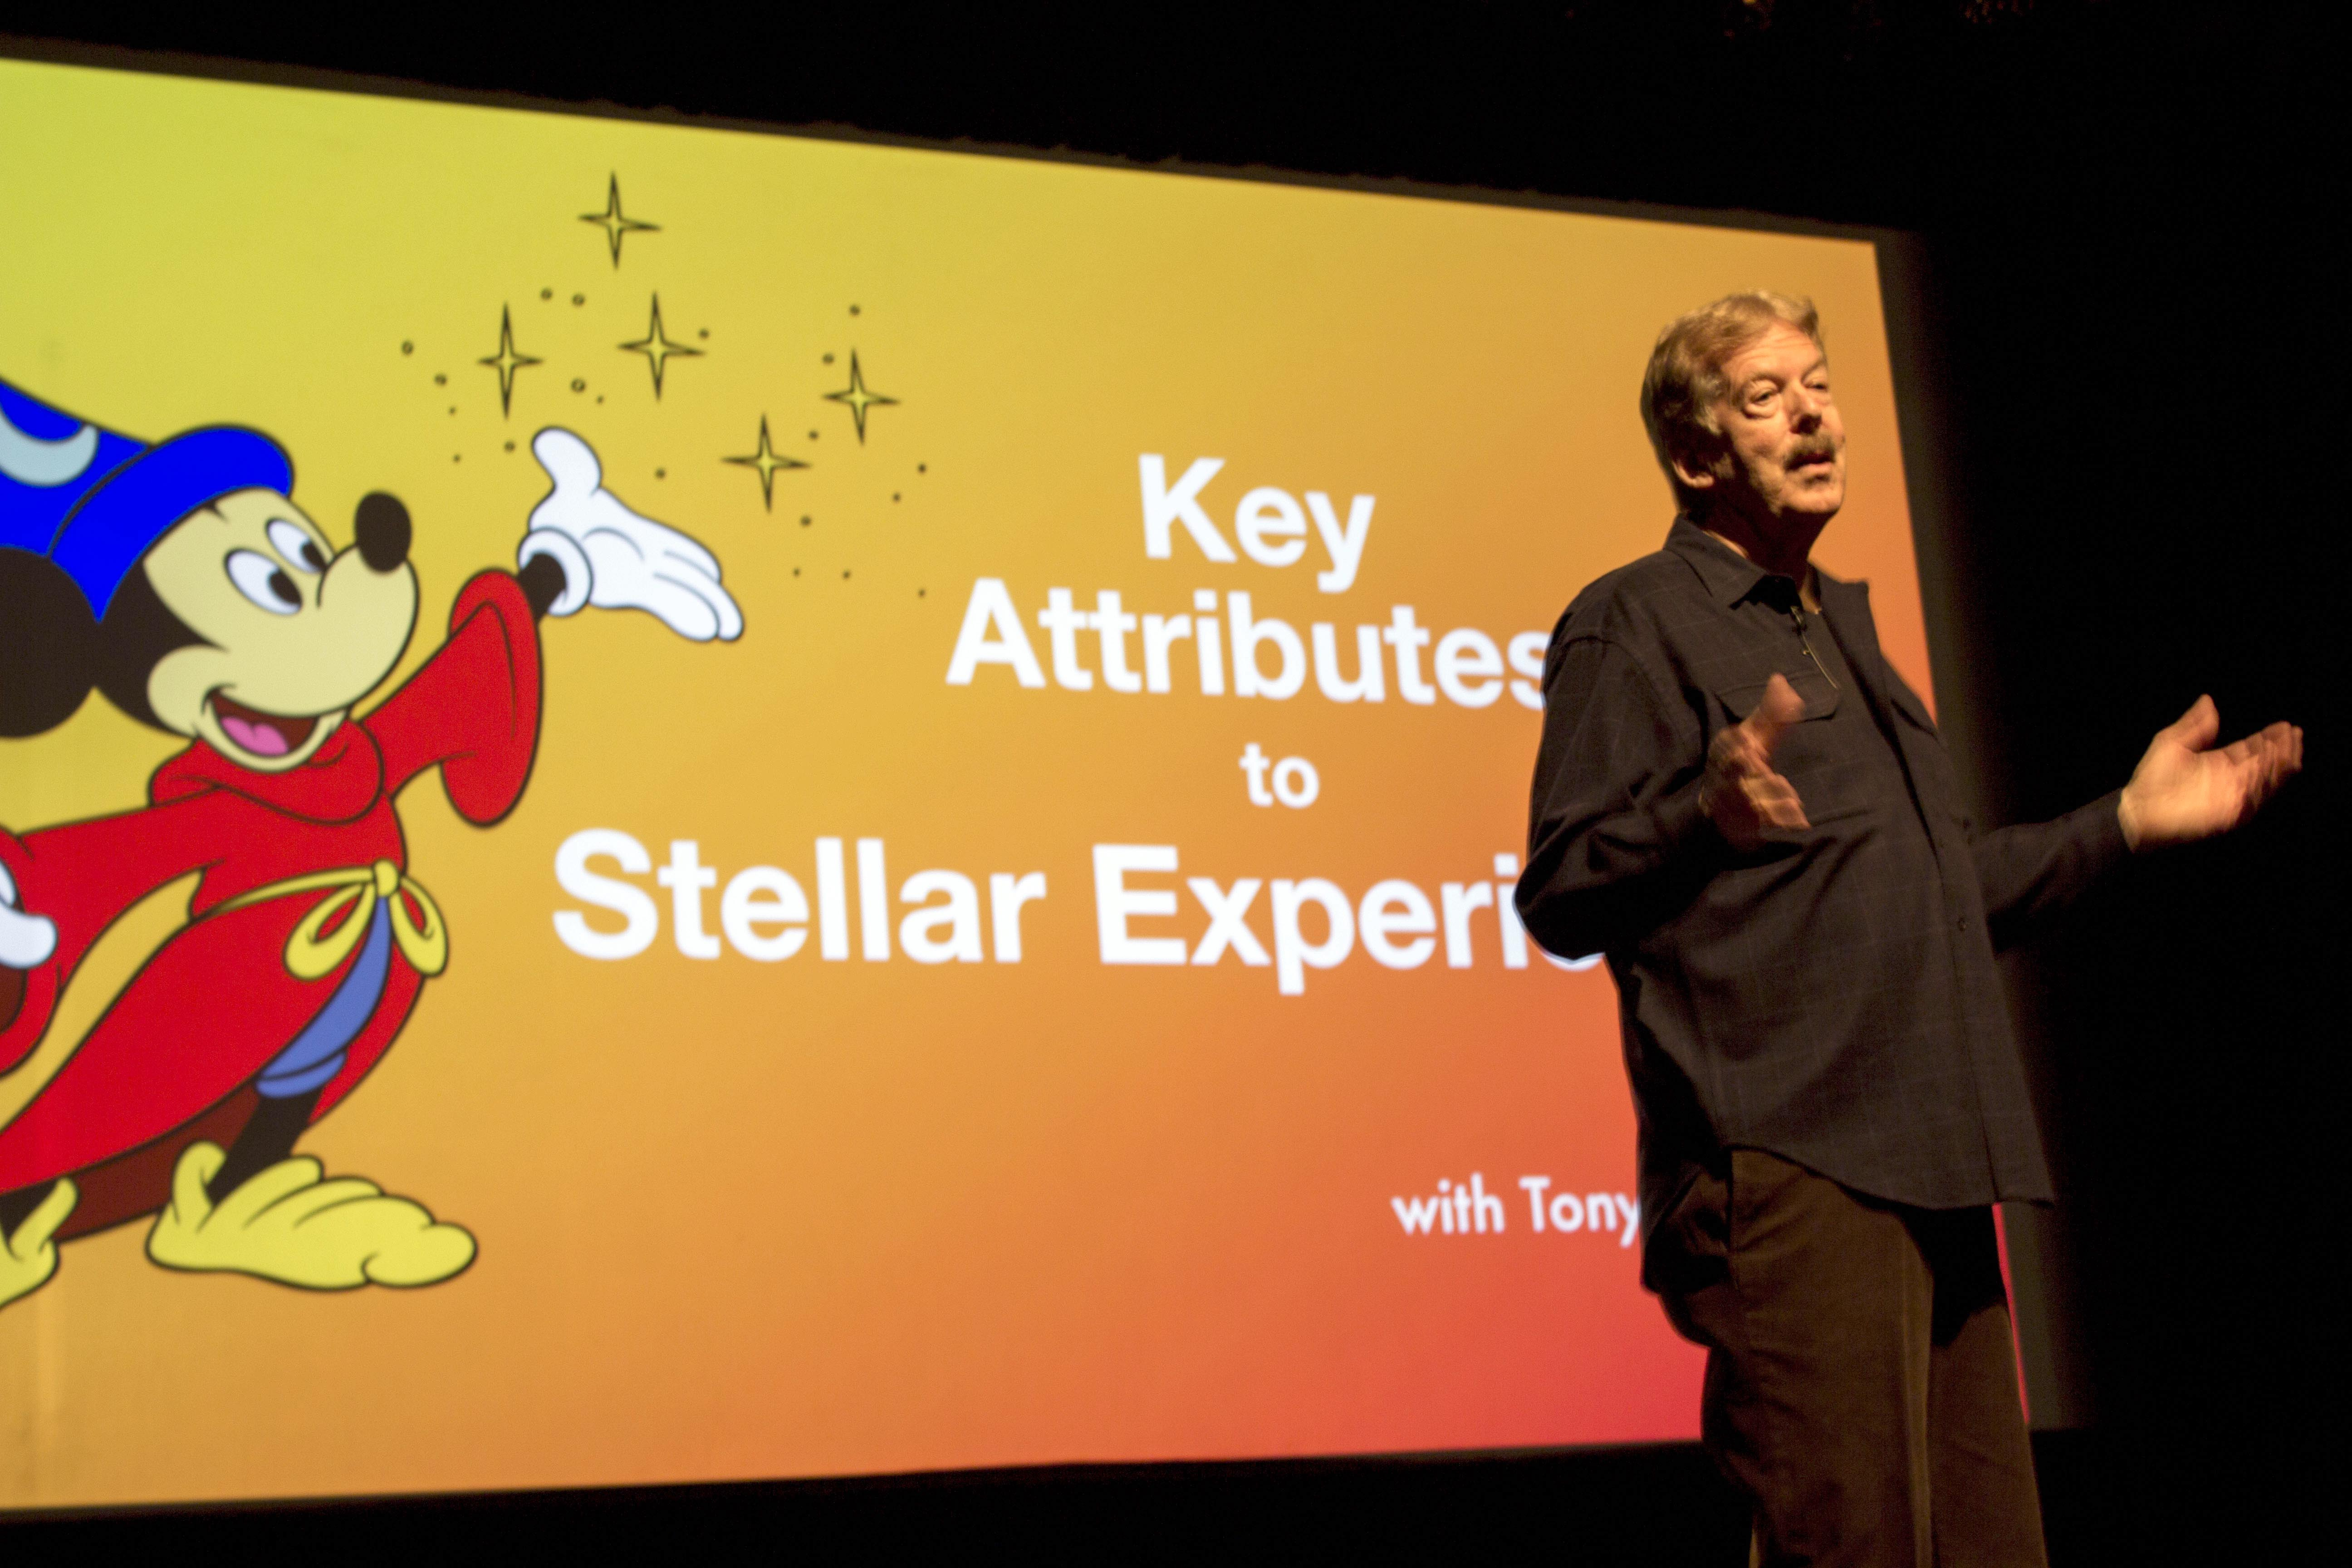 Tony Baxter, former Disney Imagineer